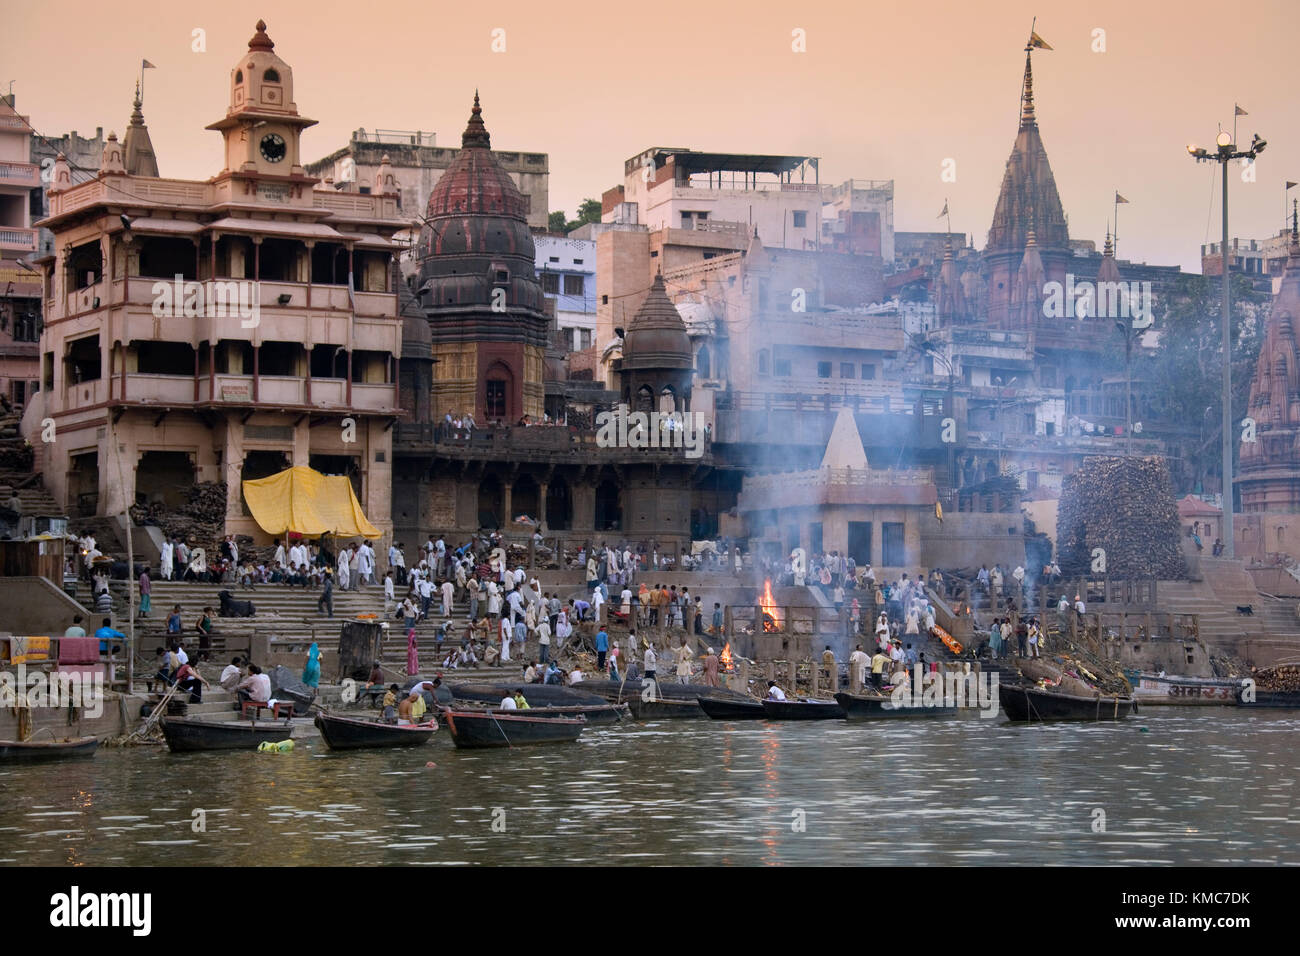 The Hindu Cremation Ghats on the banks of the Holy River Ganges at Varanasi in northern India. - Stock Image